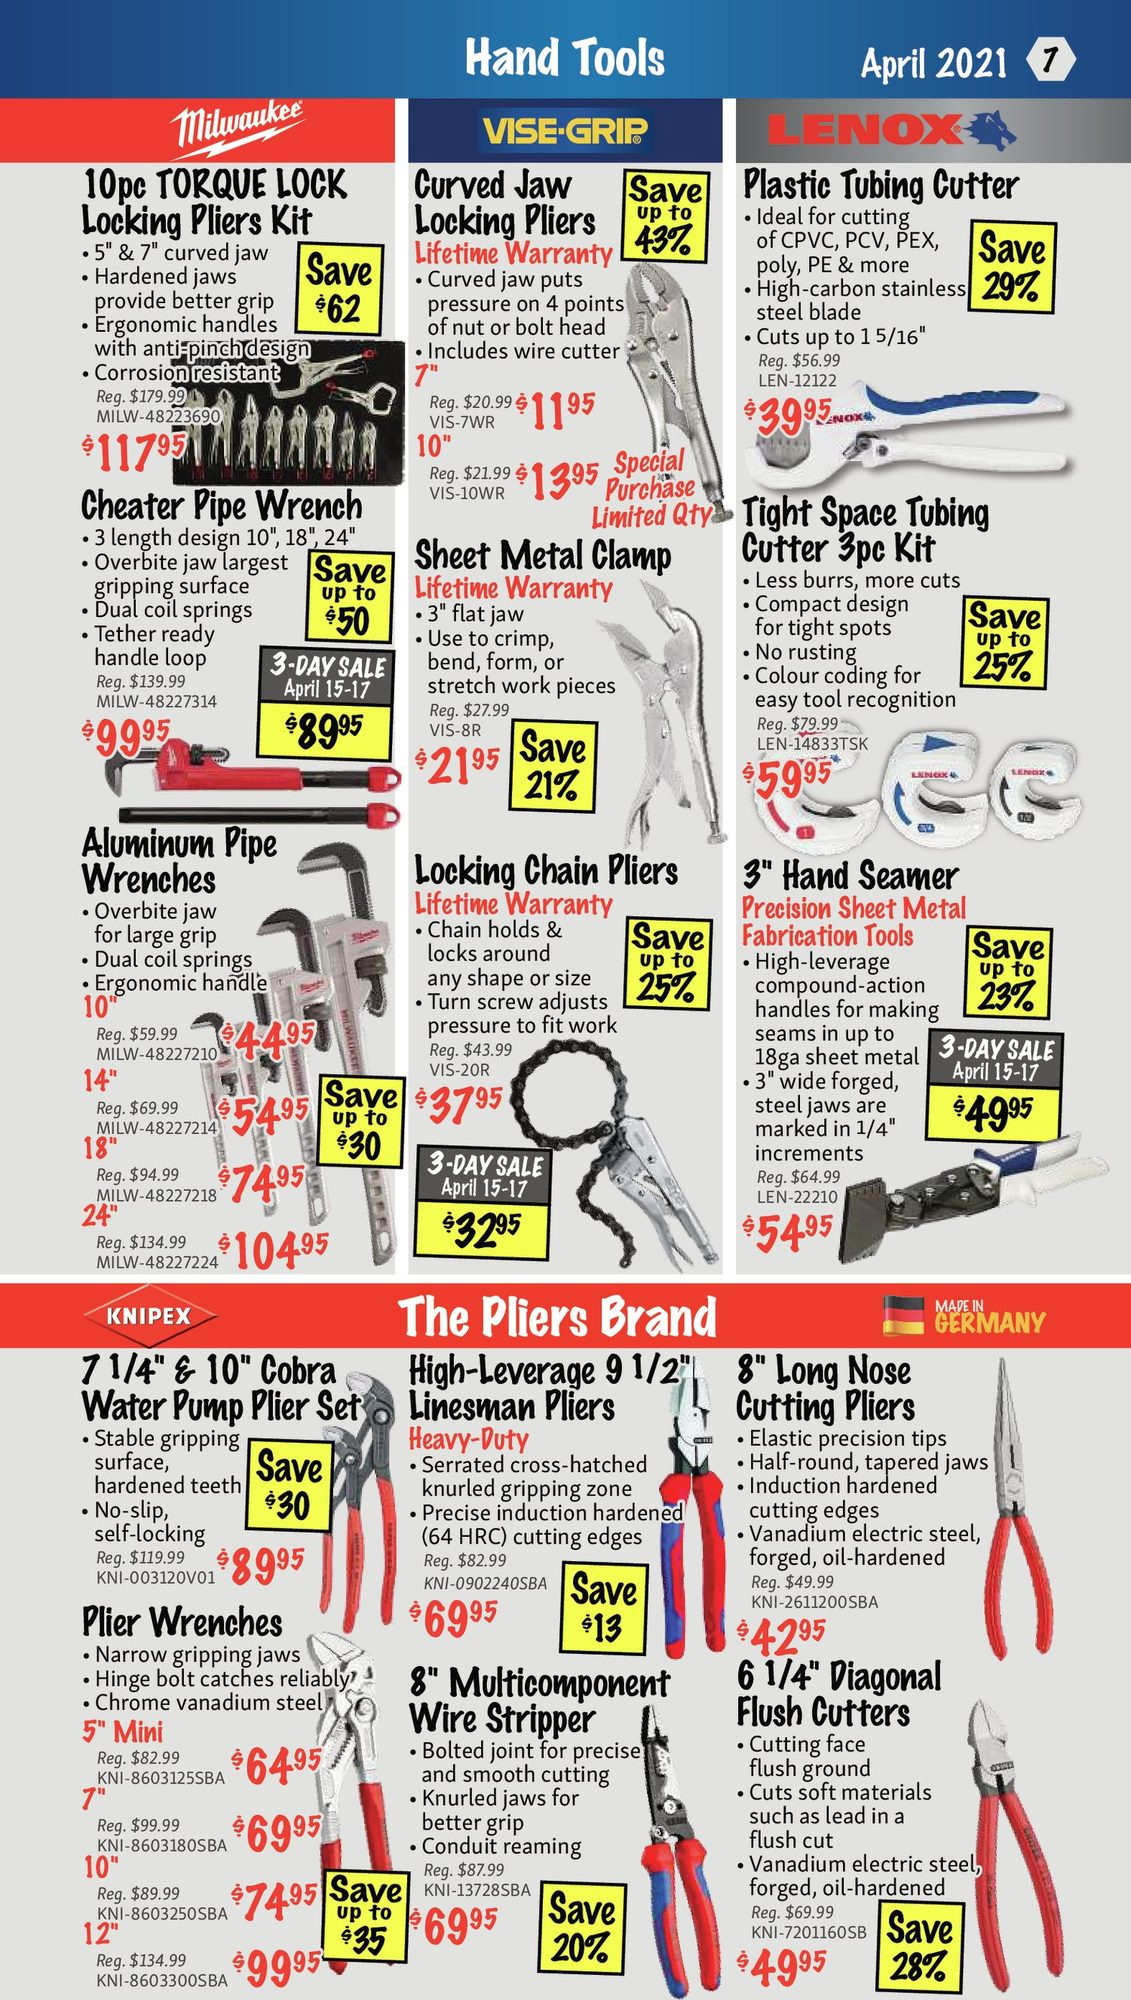 KMS Tools - Hand Tools, Air Tools & Compressor Sale - Page 7